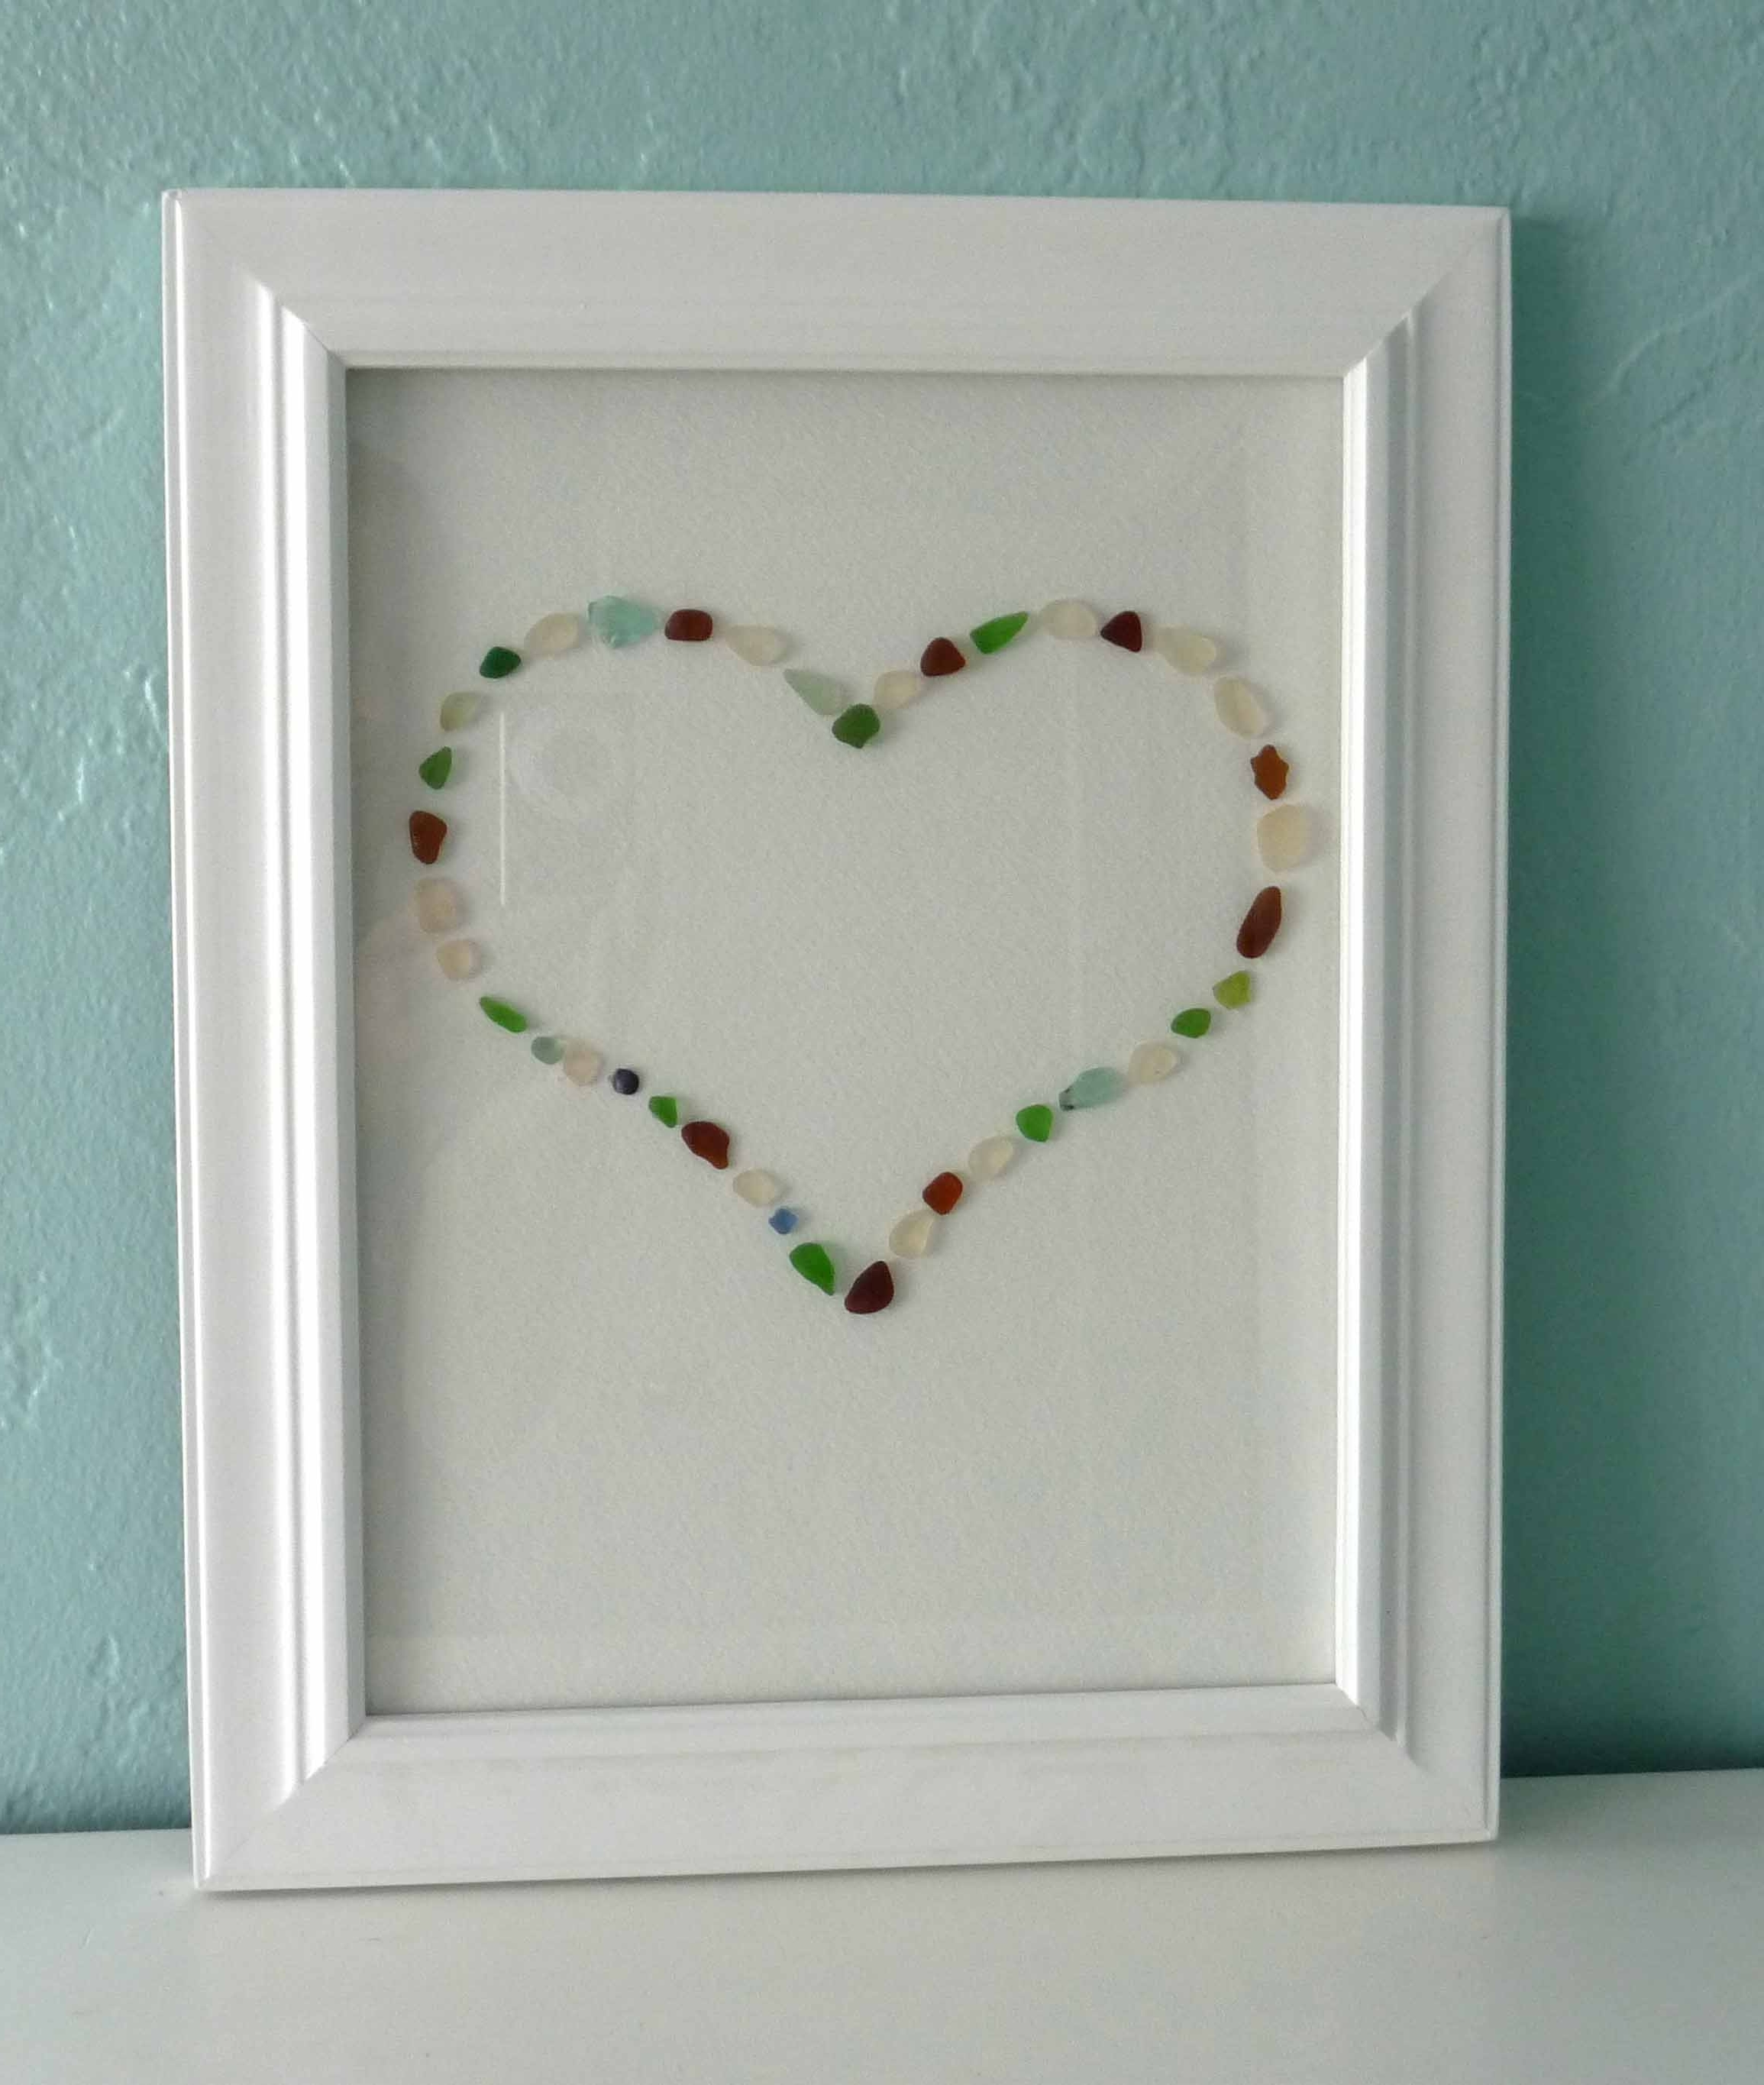 Best And Newest One Pretty Thing Diy Craft Tutorials, Sea Glass Wall Art – Swinki Regarding Sea Glass Wall Art (View 3 of 15)